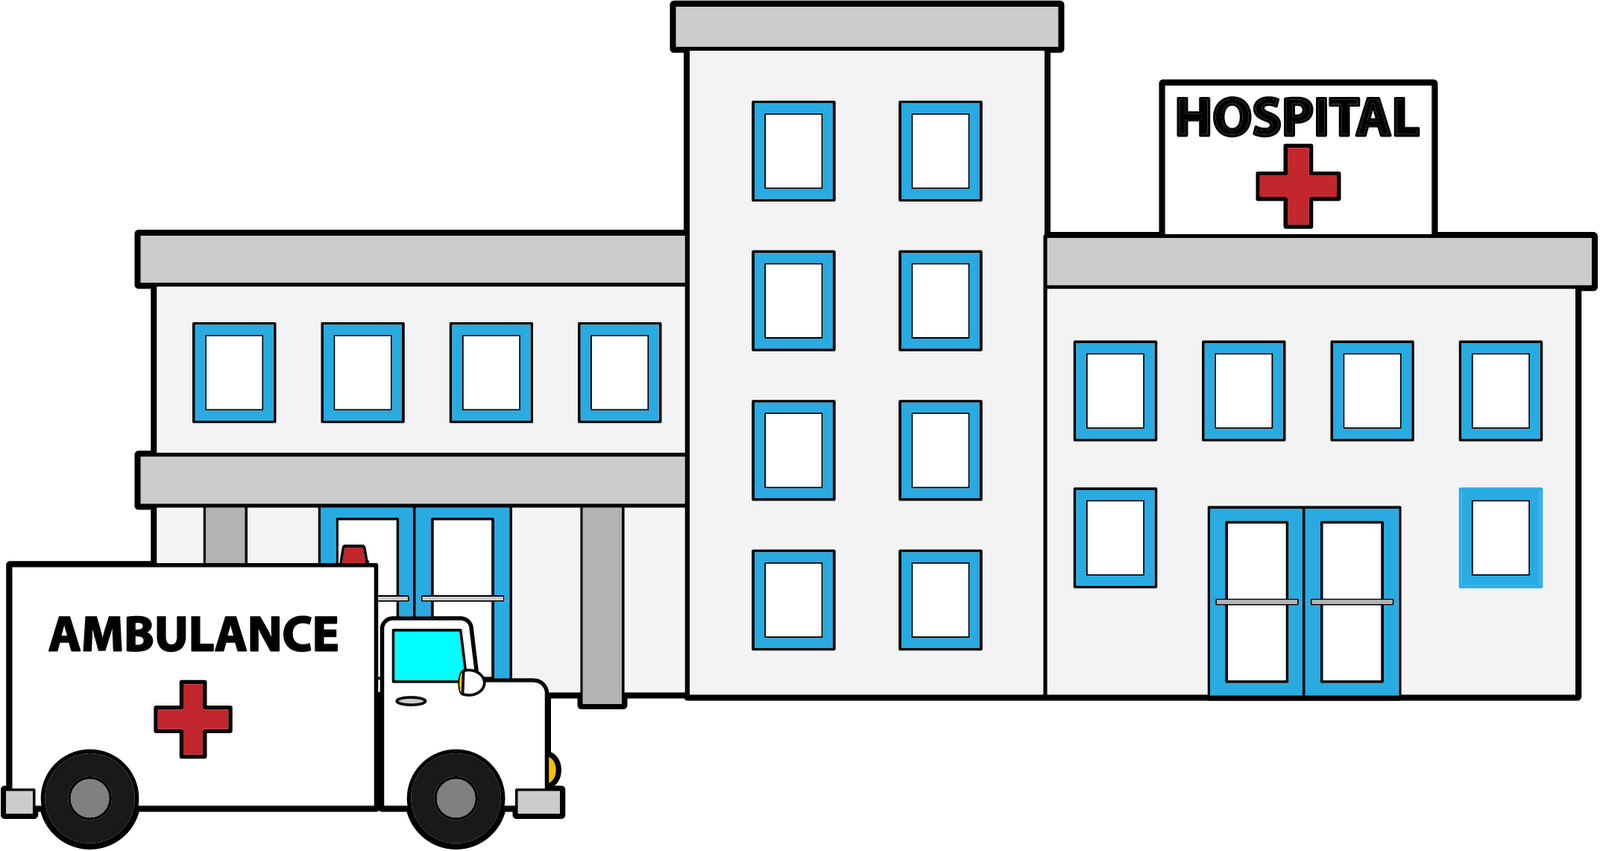 Images clipart of book hospital image stock Hospital Clipart at GetDrawings.com | Free for personal use Hospital ... image stock